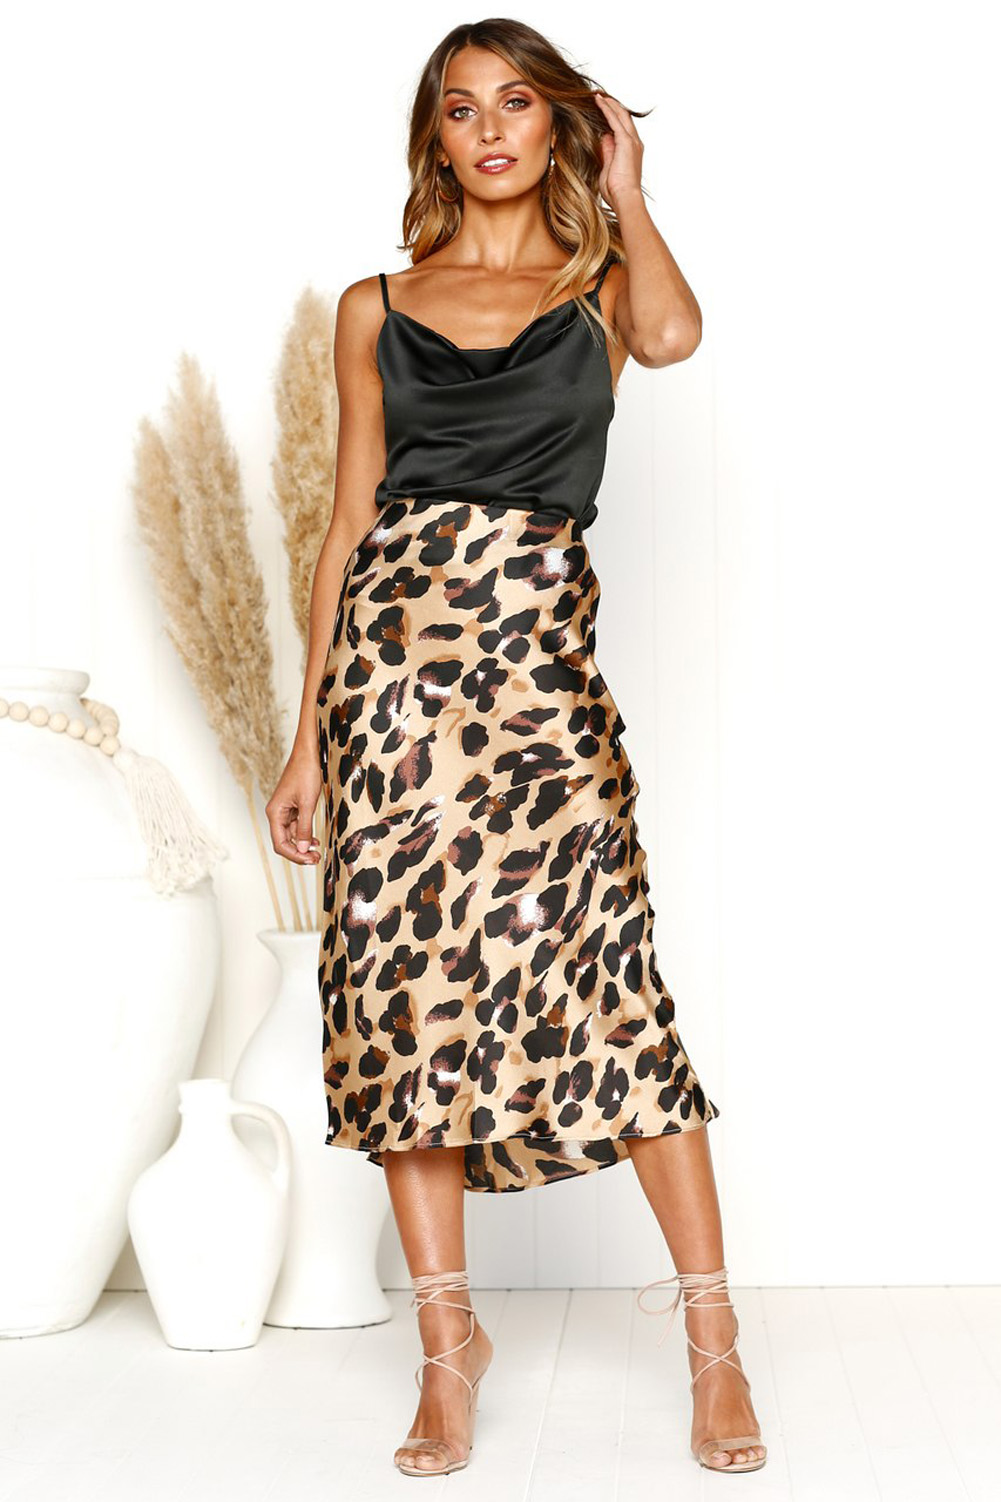 aef4a067ce Details about Women s Sexy Leopard Print Bodycon Slim Midi Length Skirt  Party High Waist Dress